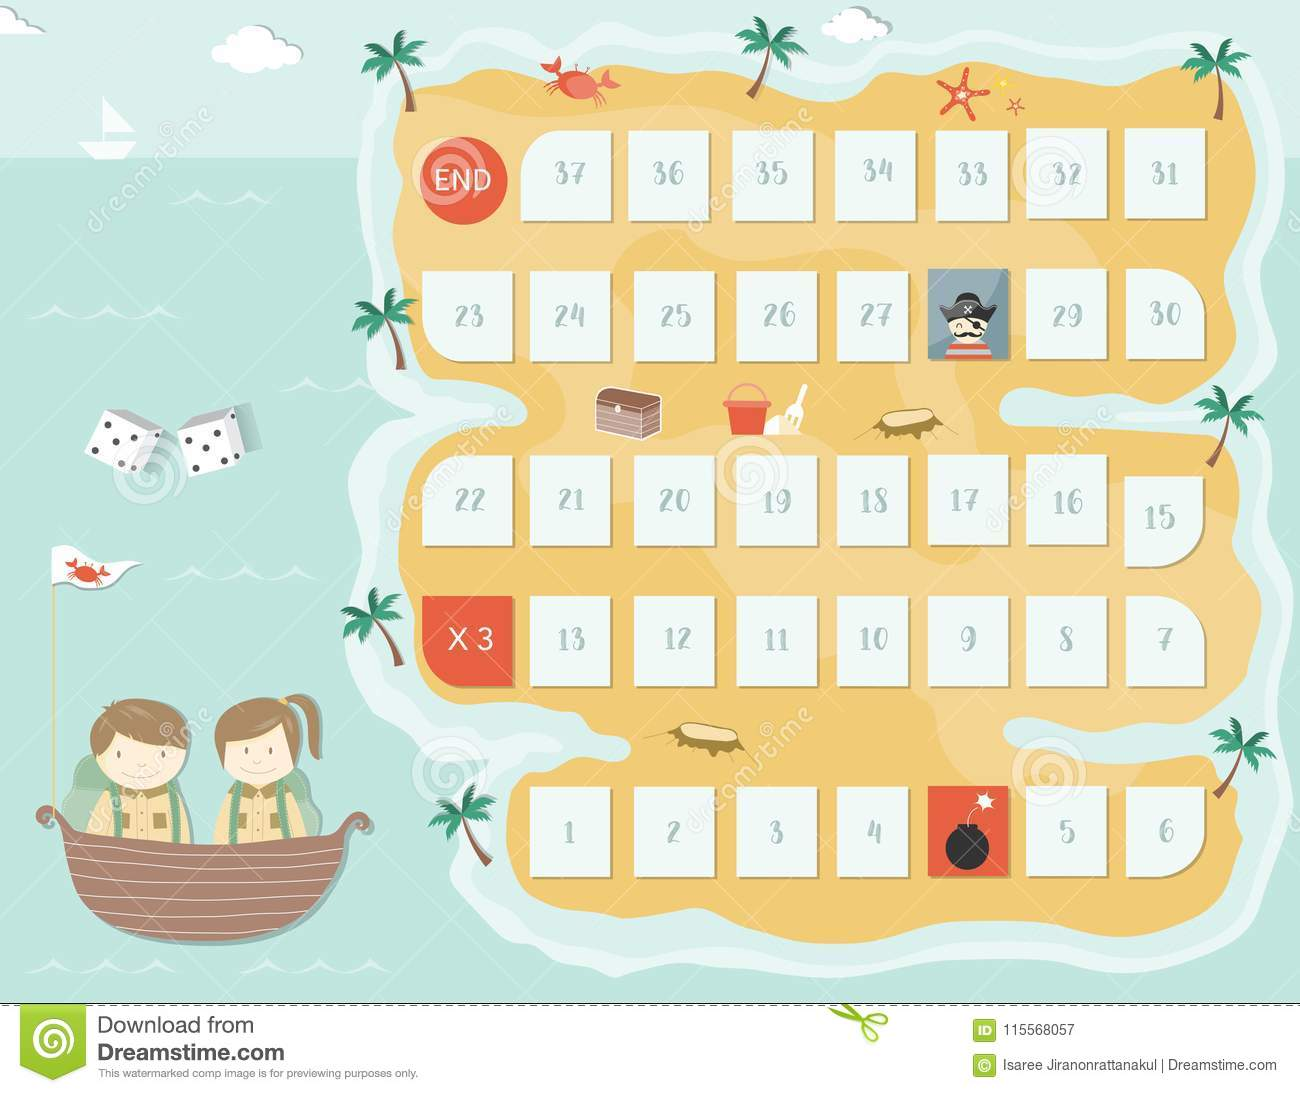 Pirate Board Game Templateboard Games Vector Illustrations Stock